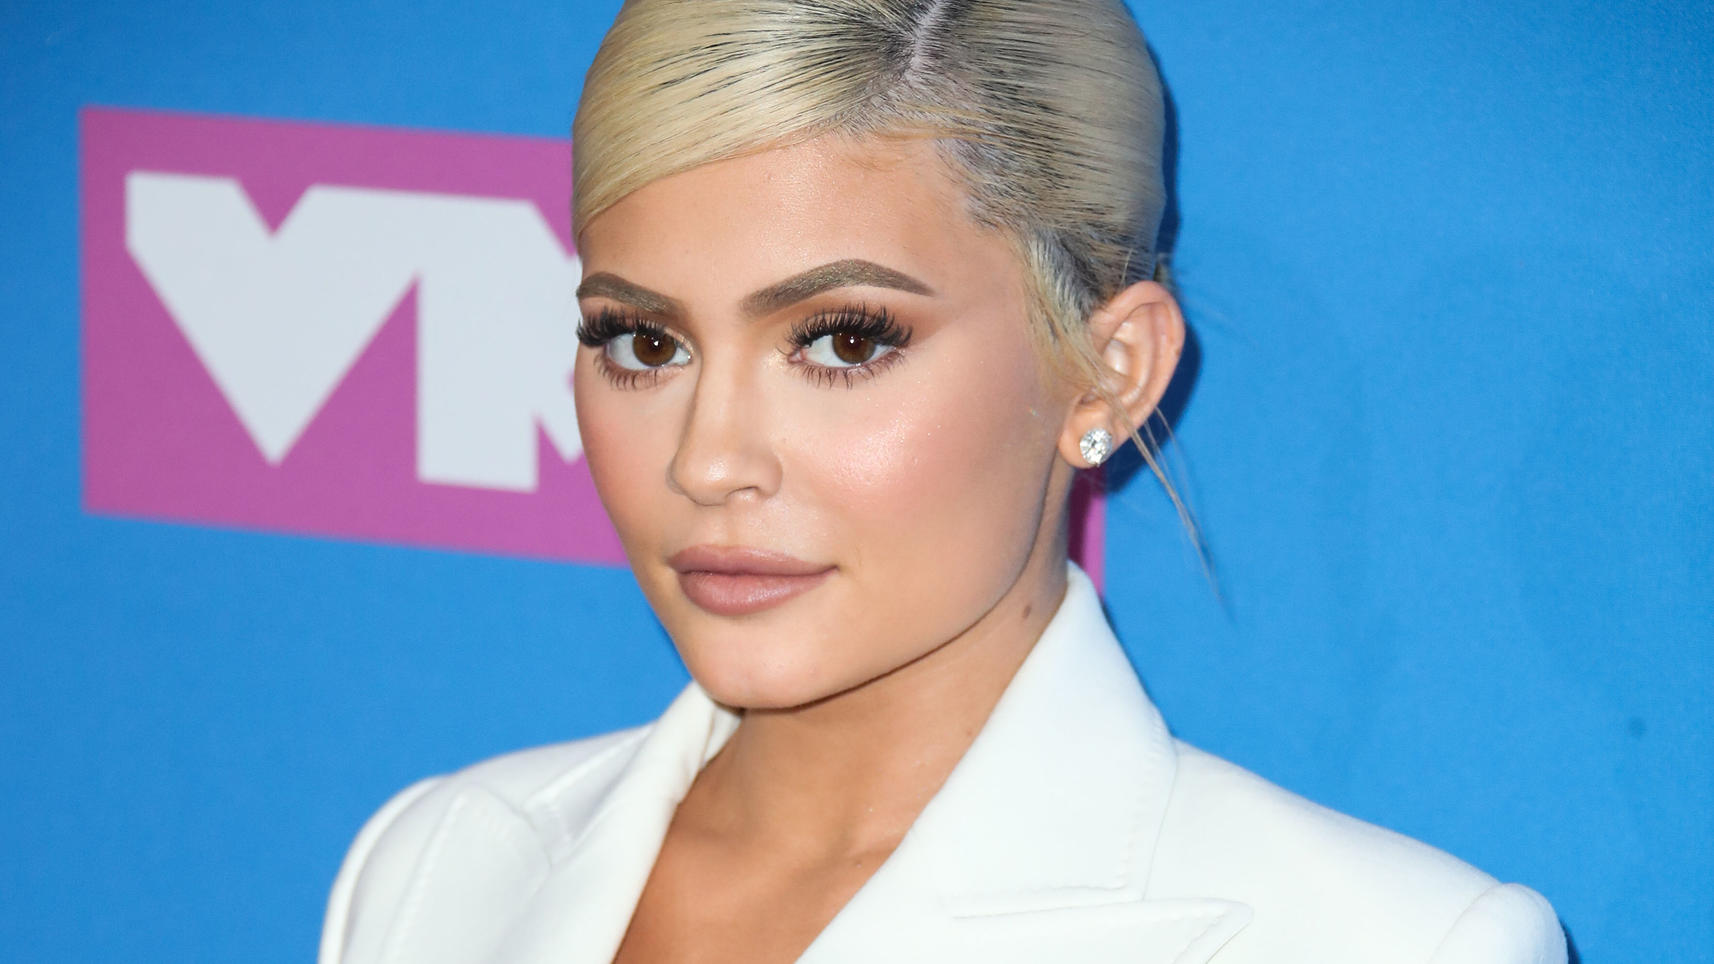 (FILE) Kylie Jenner To Donate Hand Sanitizers to Southern California Hospitals With Coty Amid Coronavirus COVID-19 Pandemic. MANHATTAN, NEW YORK CITY, NEW YORK, USA - AUGUST 20: Television personality Kylie Jenner wearing Tom Ford with Olgana Paris h